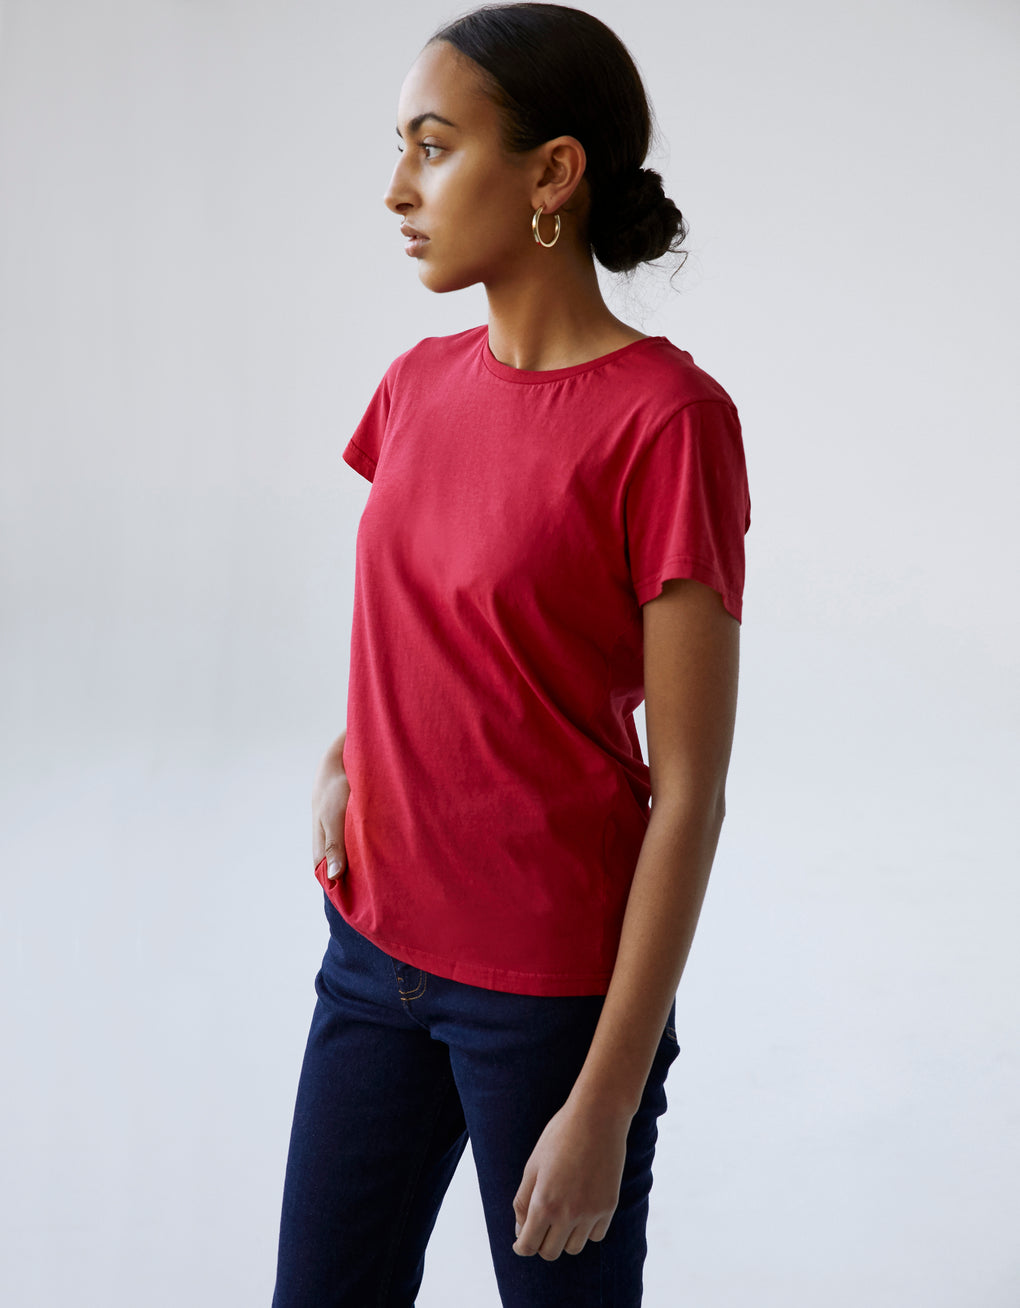 Colorful Standard Women Light Organic Tee Women T-shirt Navy Blue